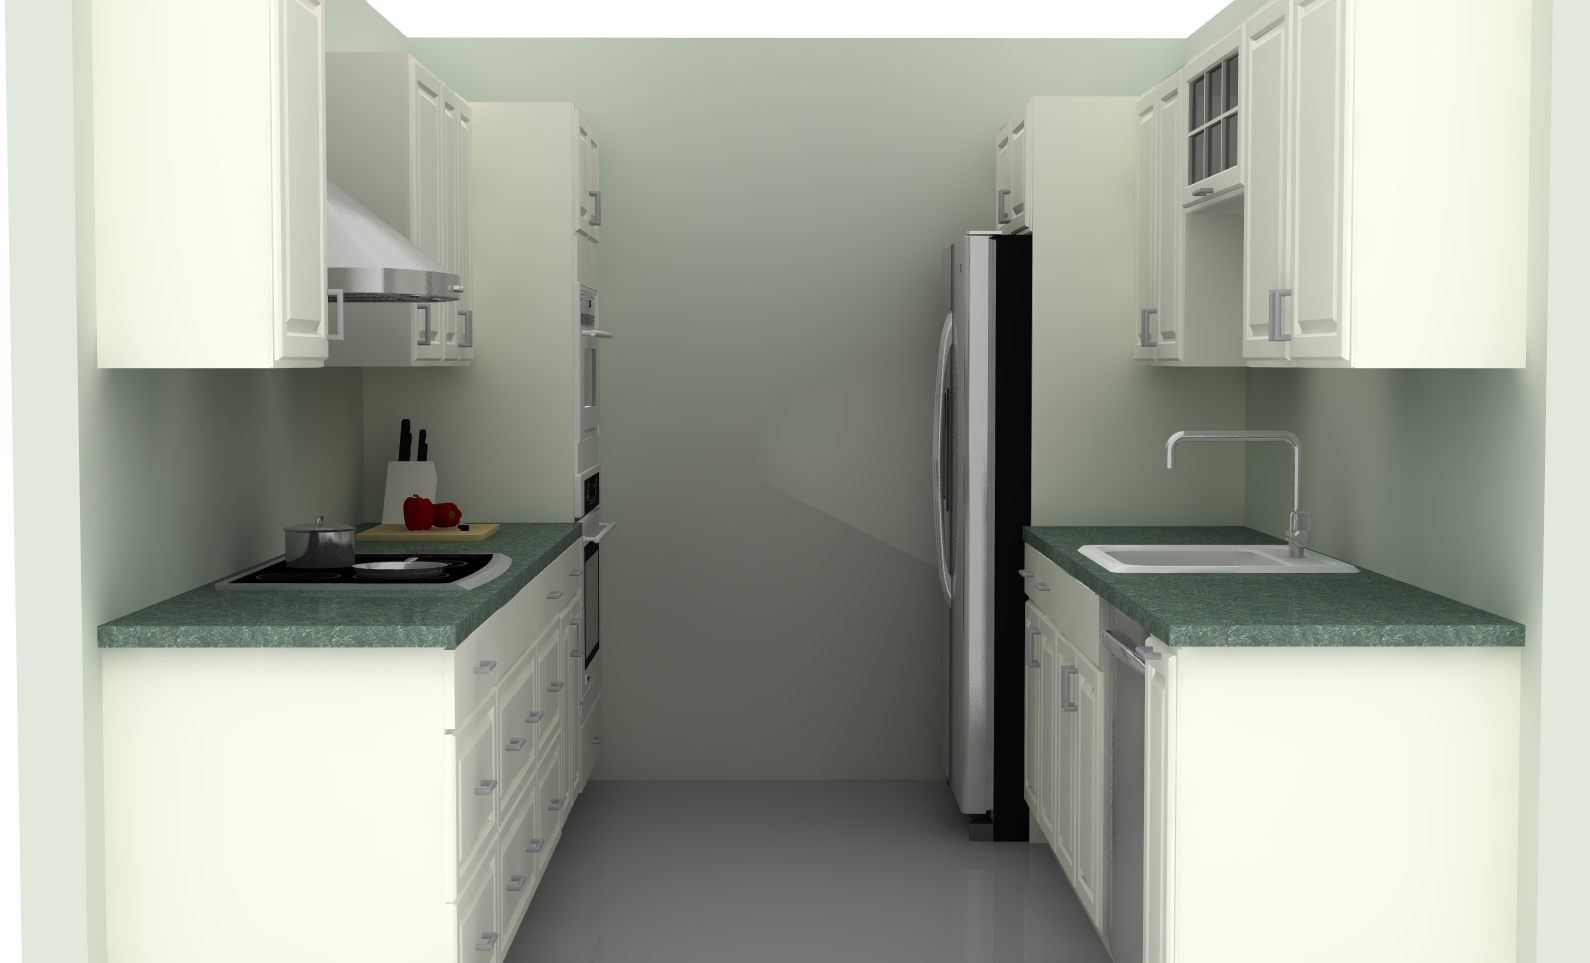 IKD Inspired Kitchen Design